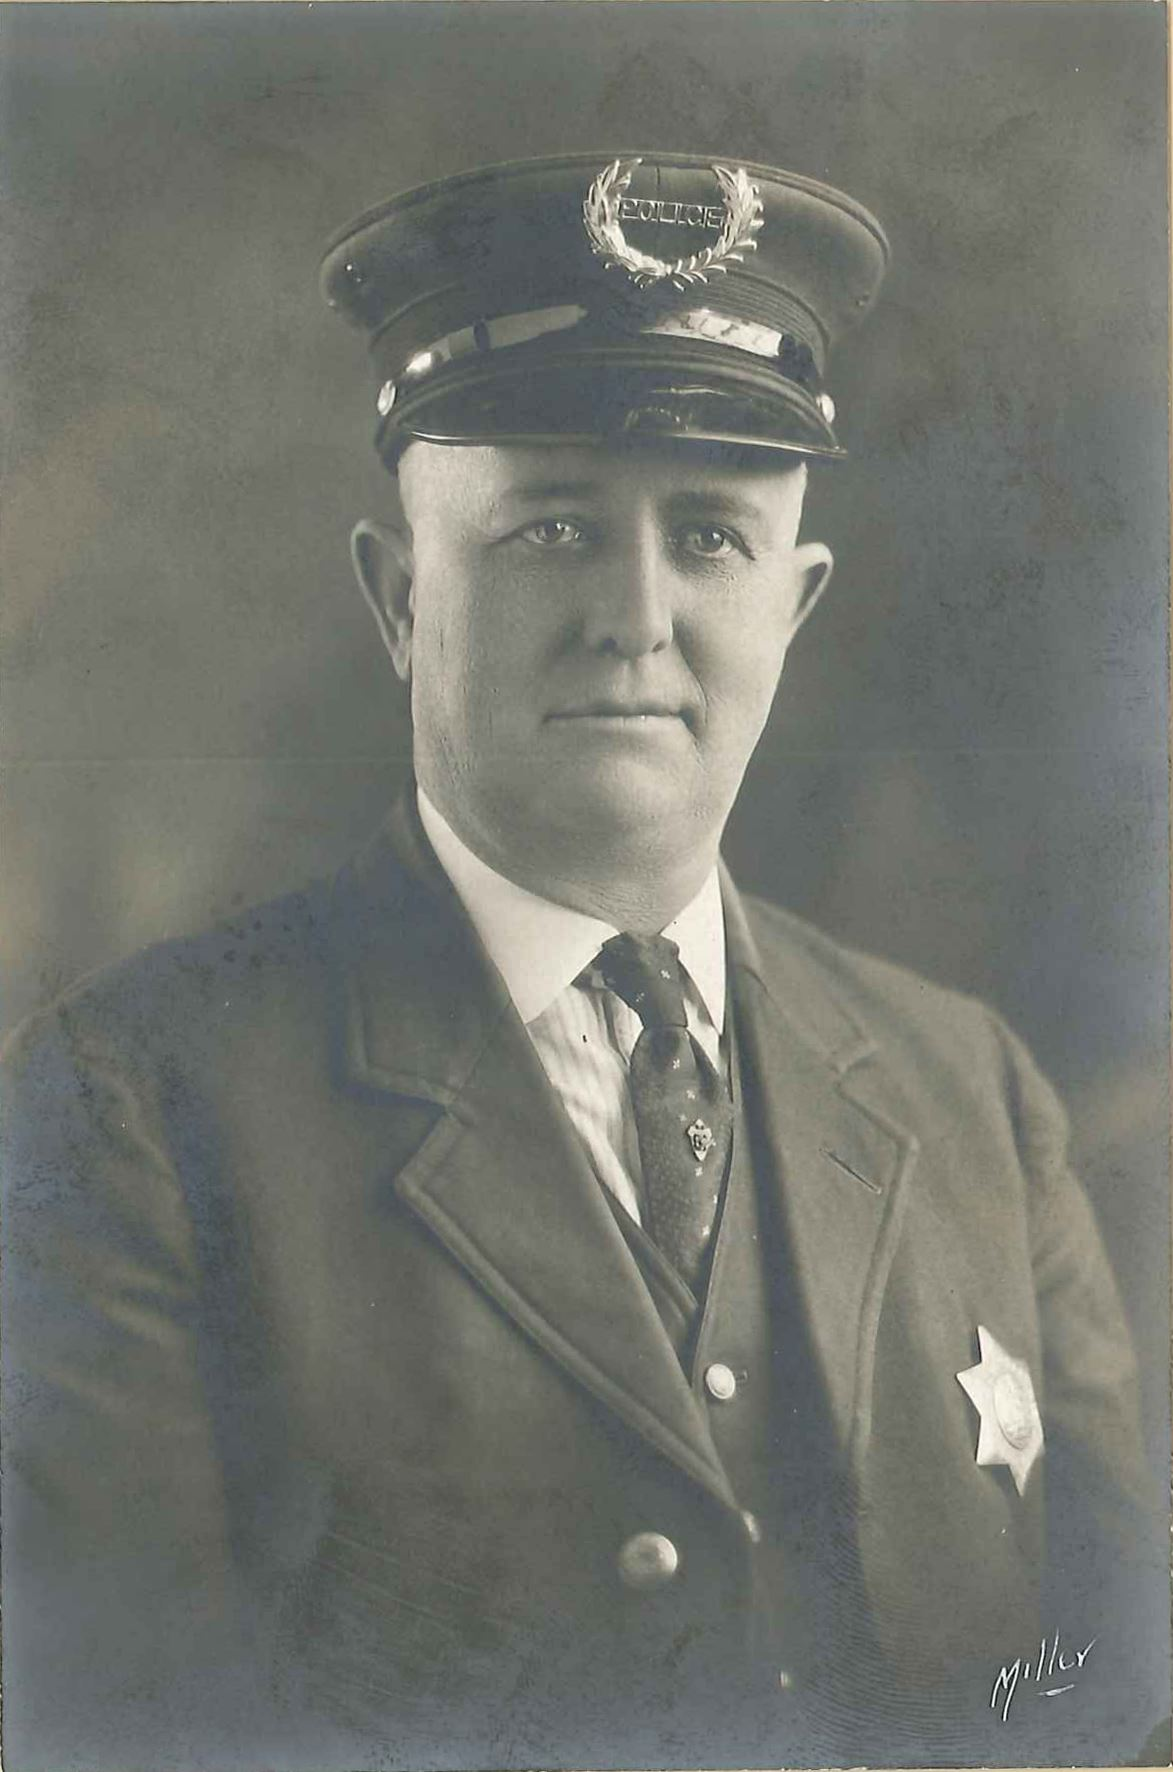 Image of Albert Fleming